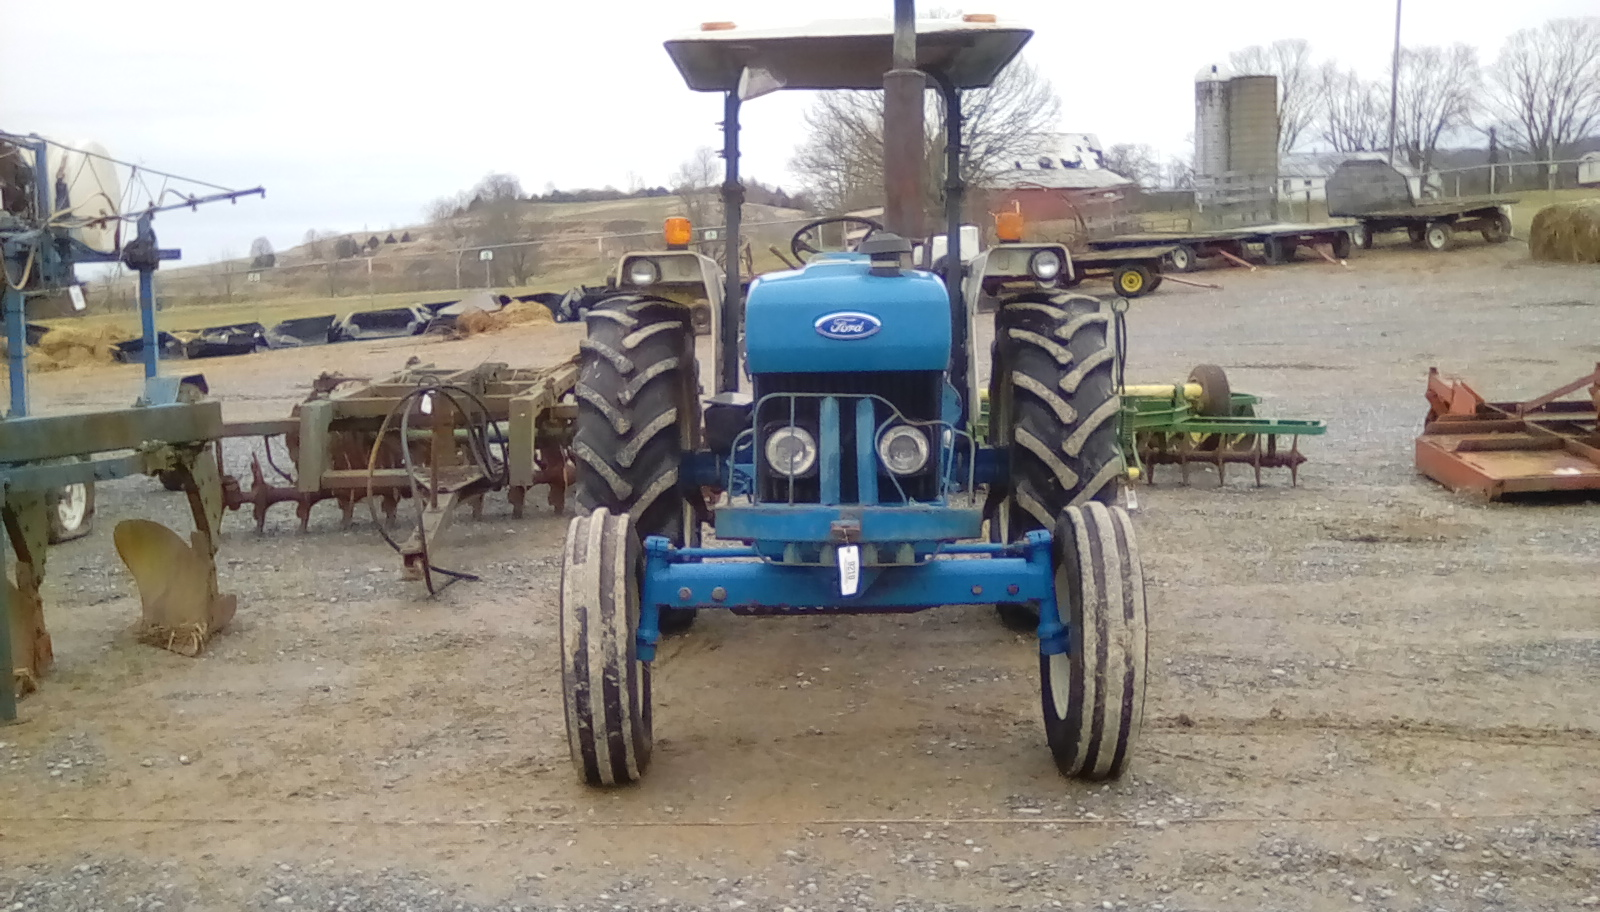 FORD 4630 TRACTOR Image